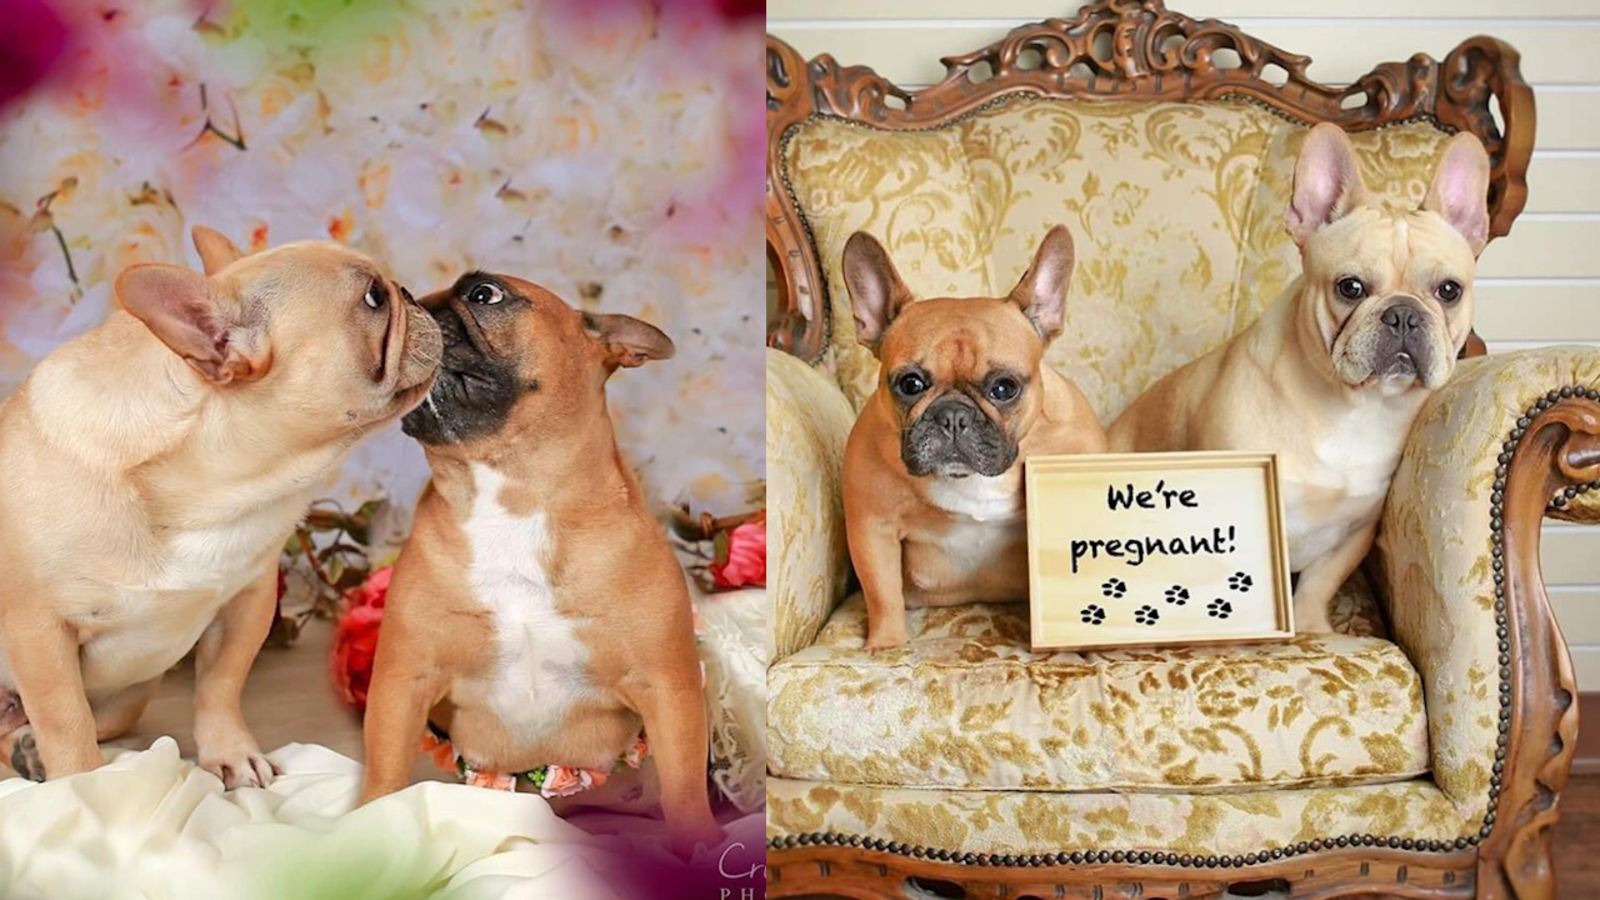 French bulldogs pose for adorable maternity shoot in El Campo